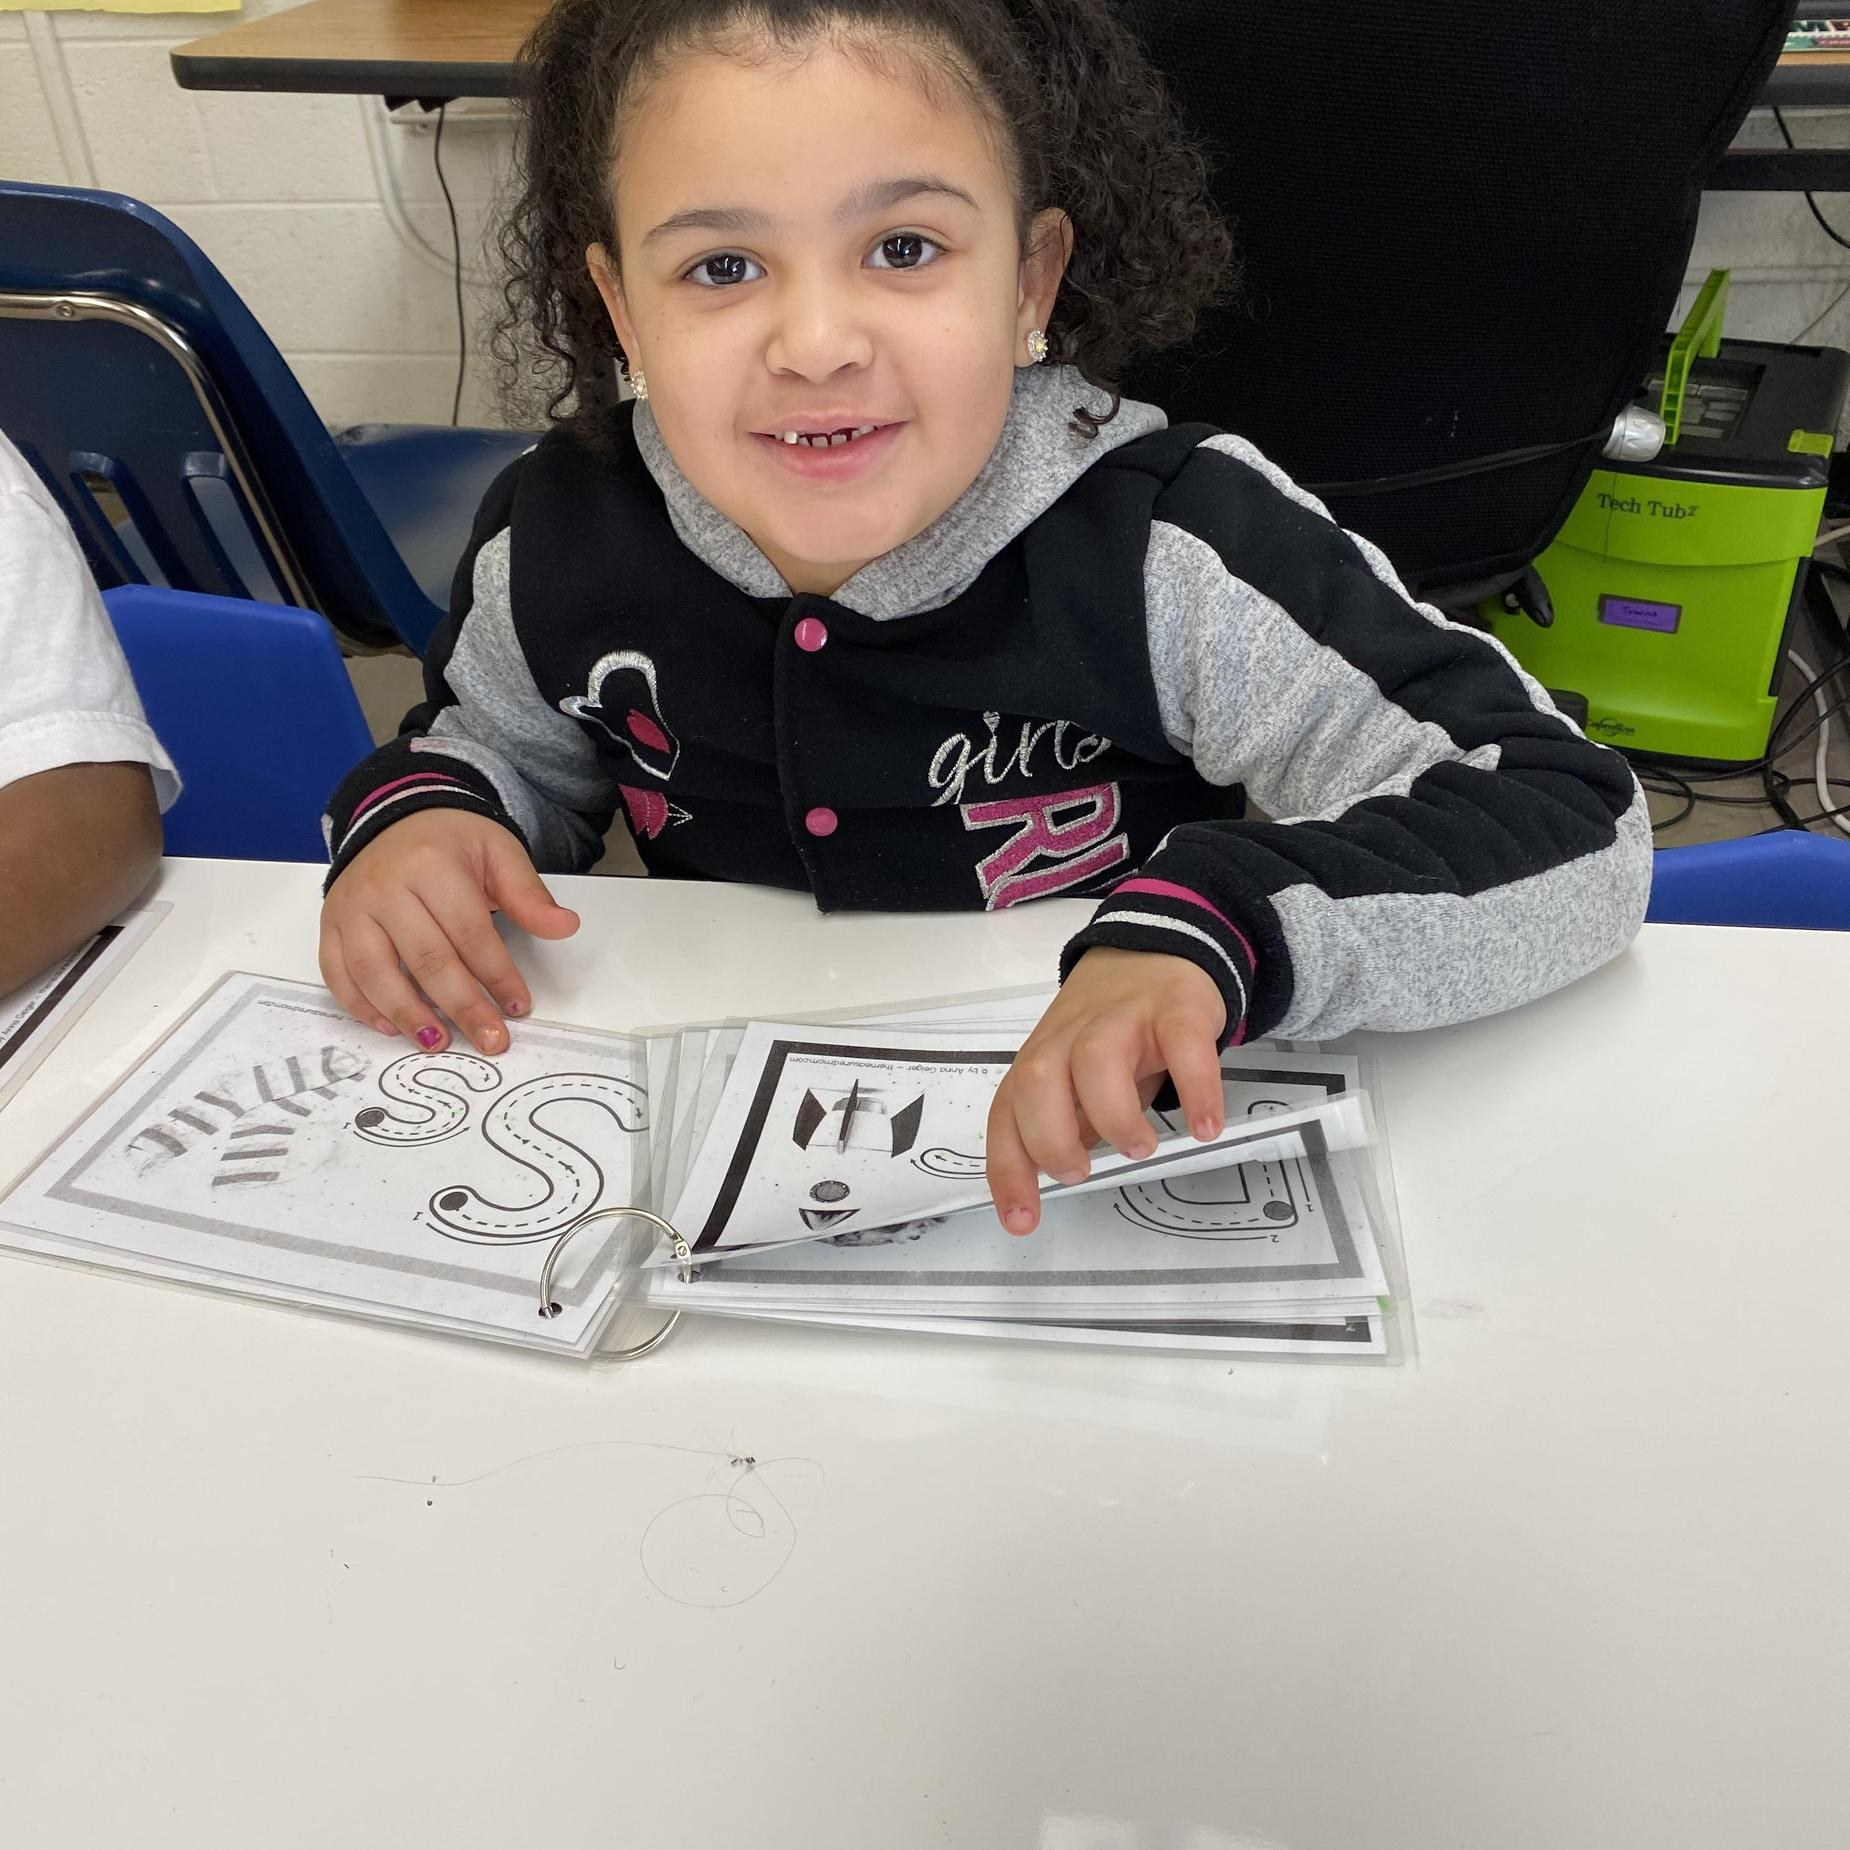 Another student practicing letters.